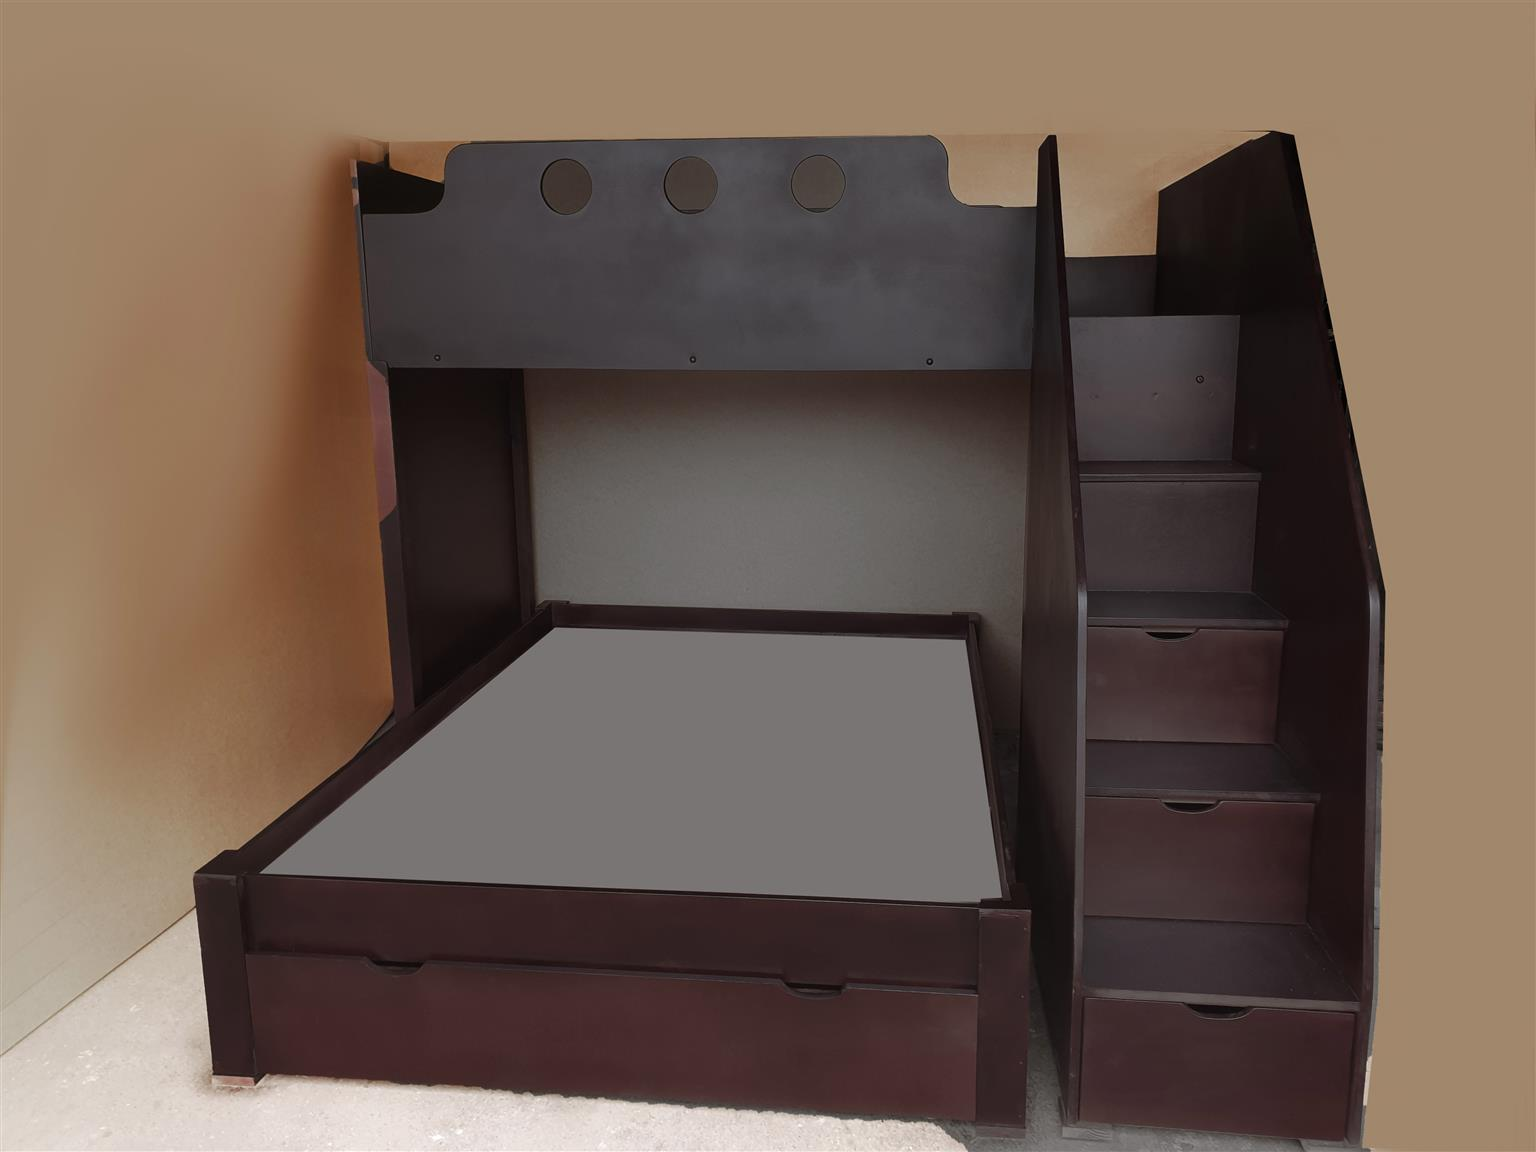 Fitted Bunk Bed KA 02-R6999